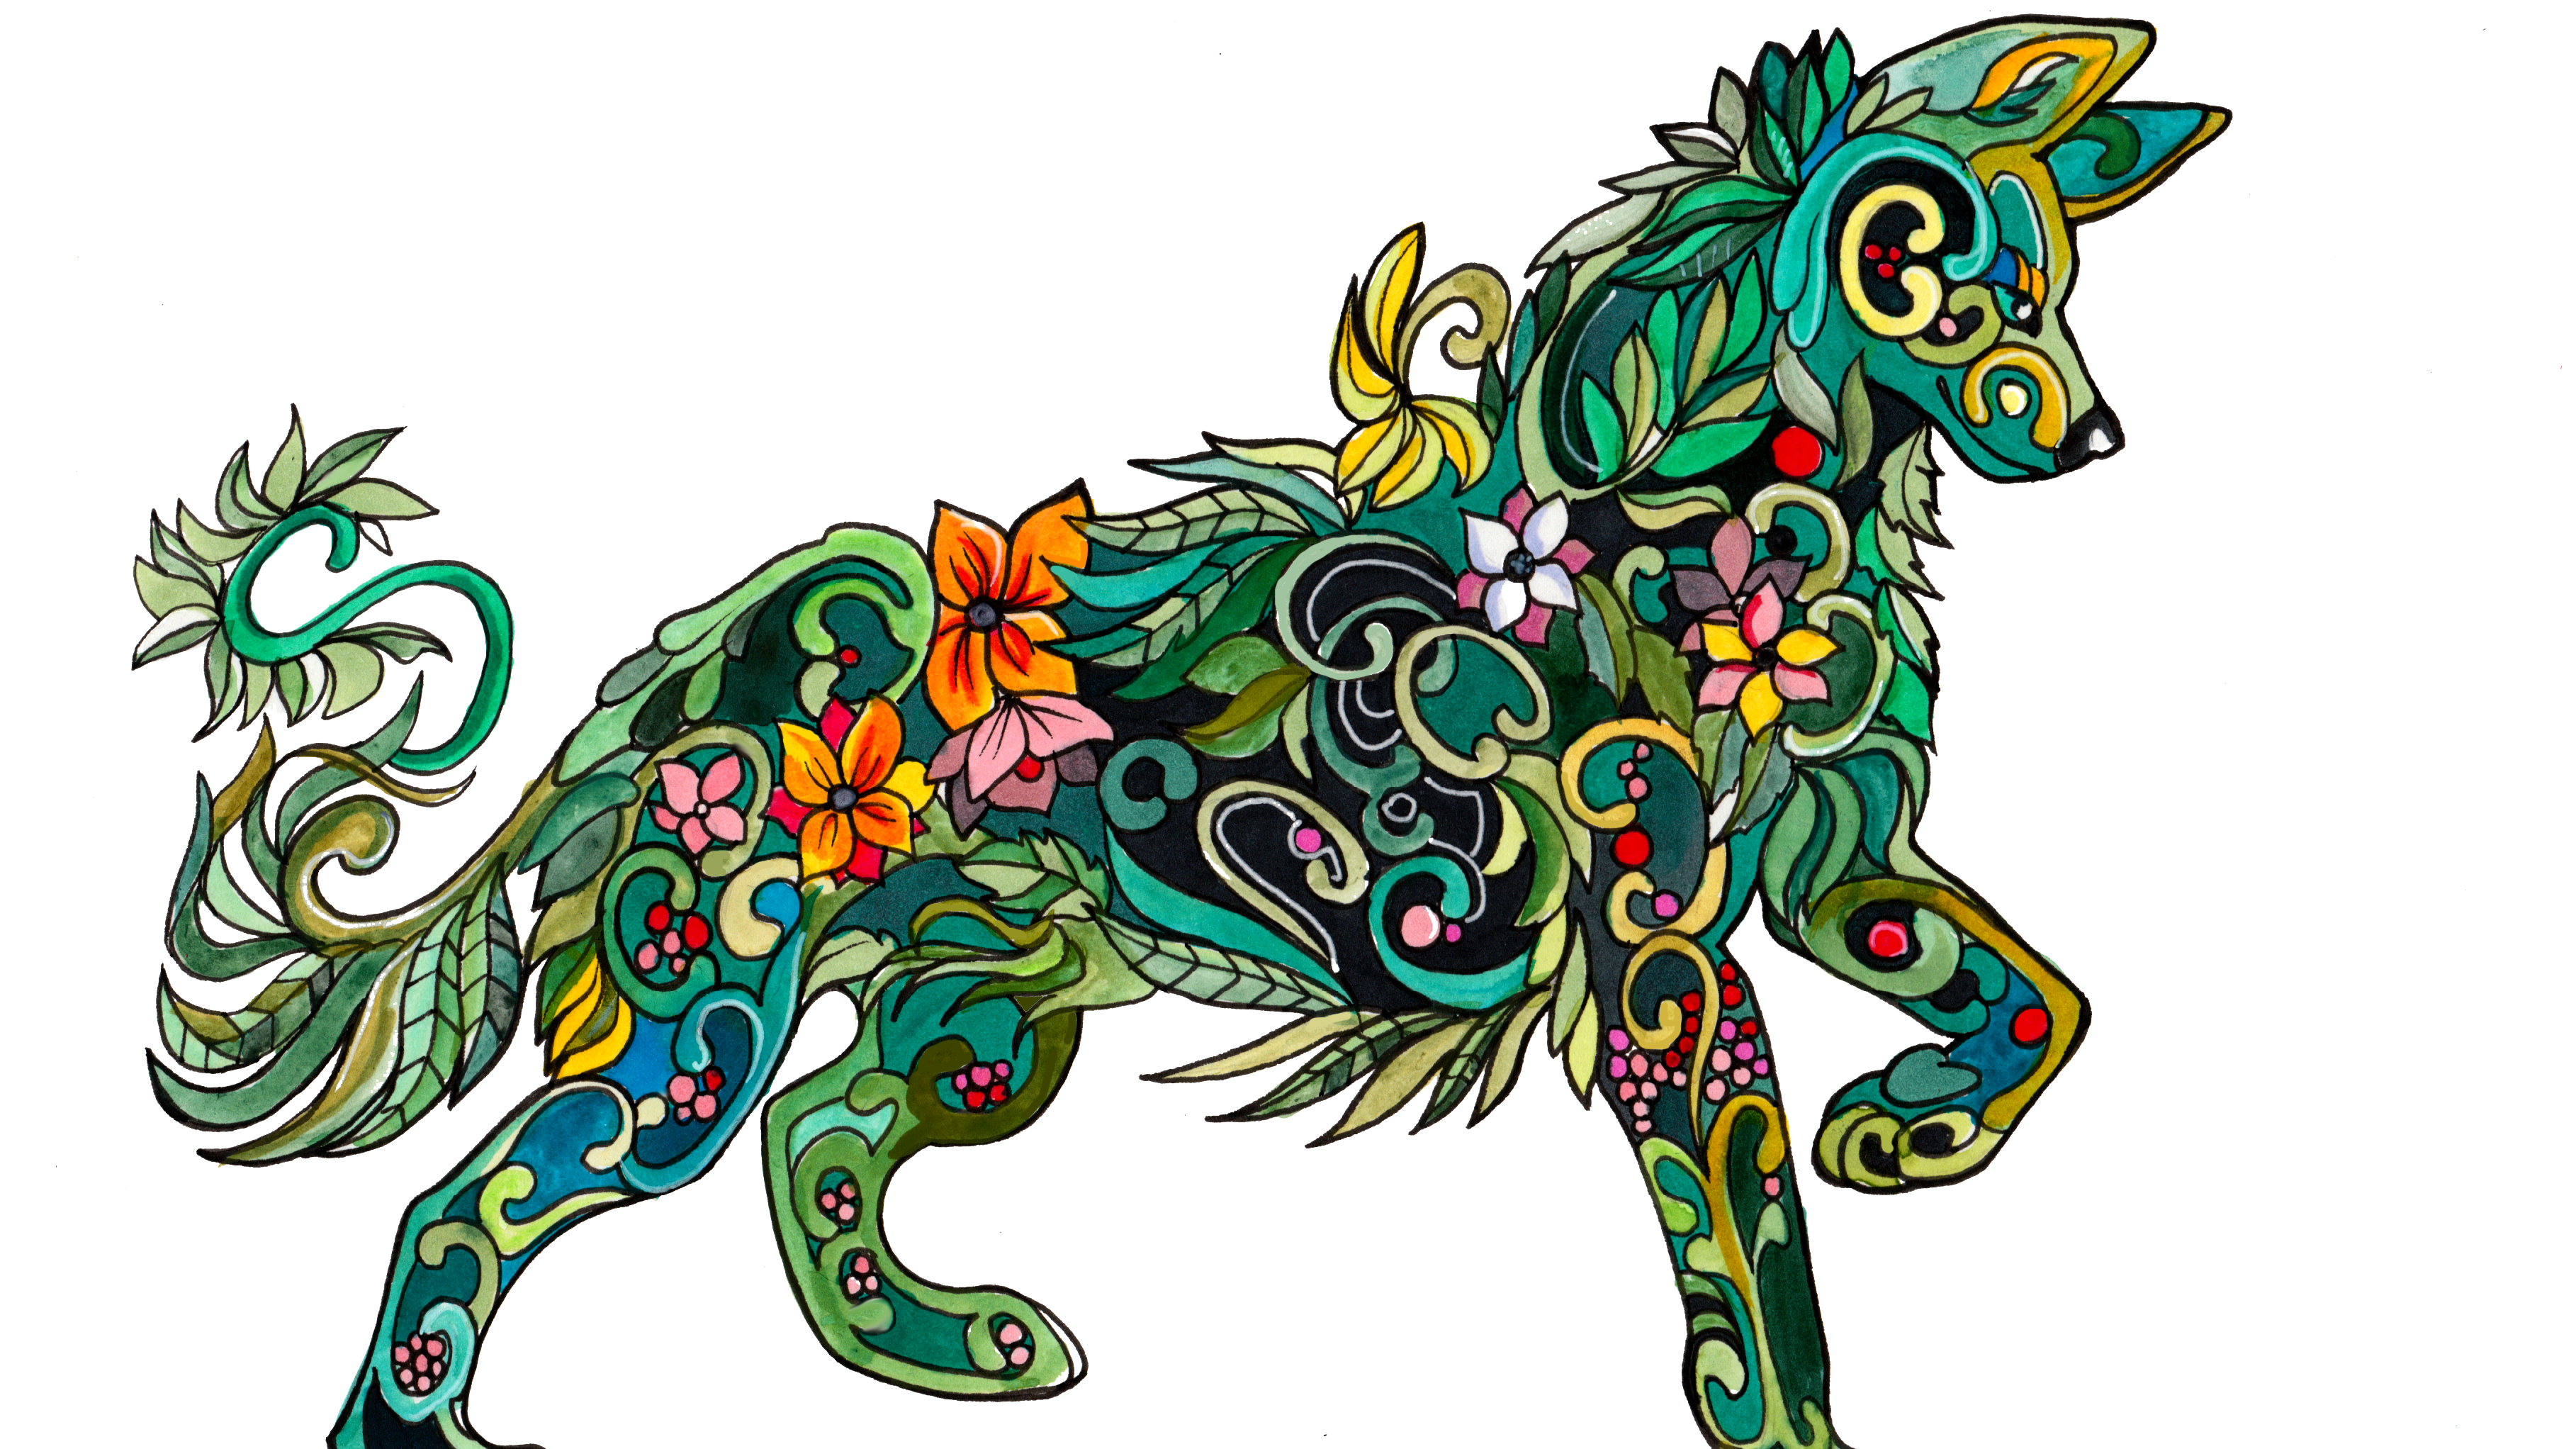 America's obsession with adult coloring is a cry for help